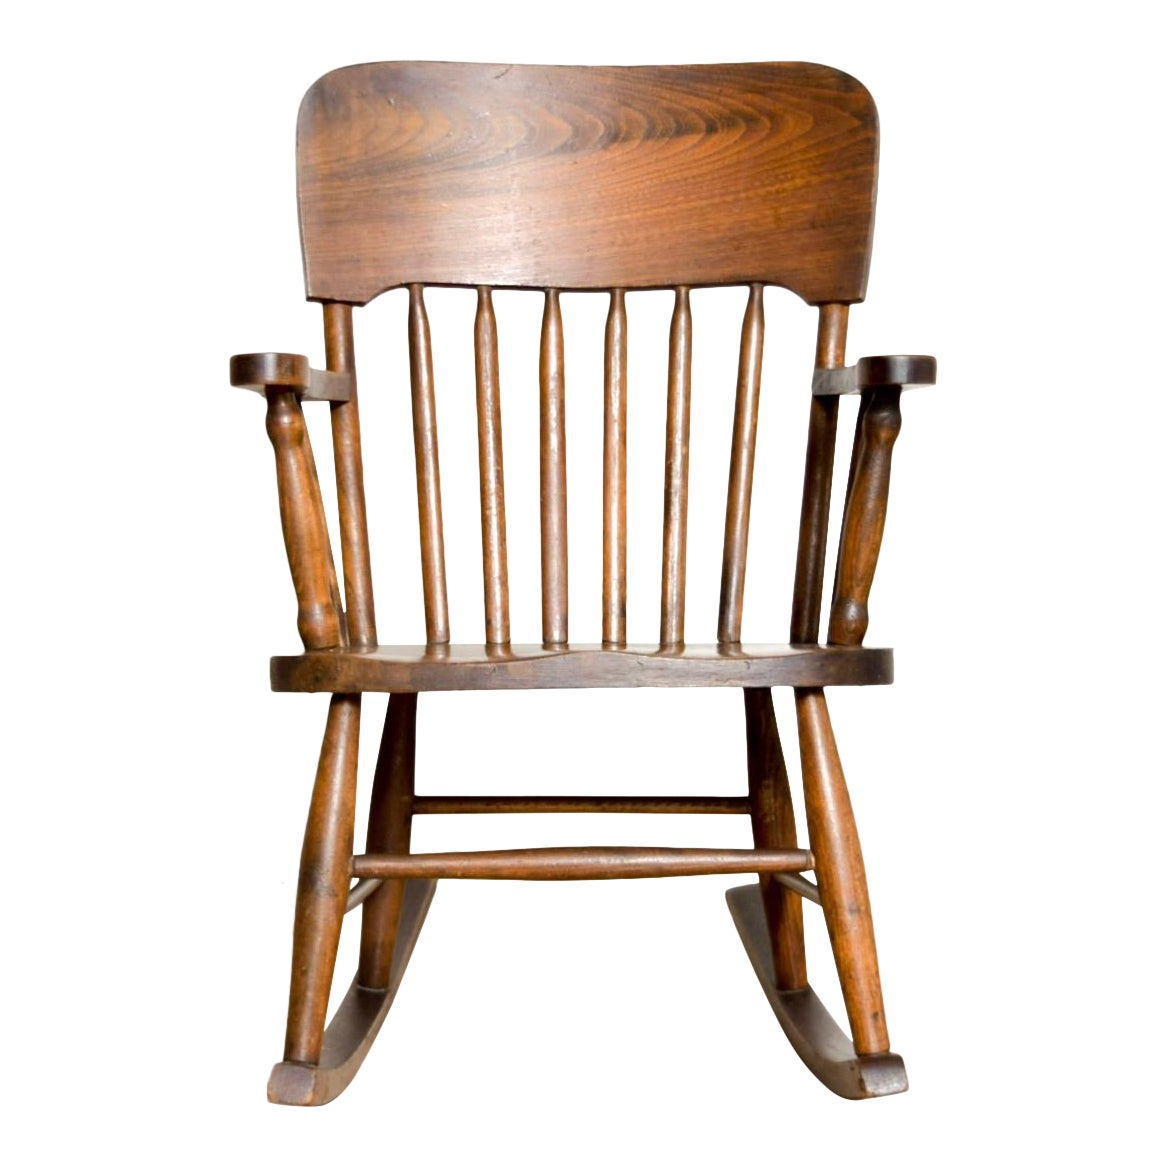 Antique Turn-of-the-Century Handcrafted Spindle Back Child's Wooden Rocking  Chair   Chairish - Antique Turn-of-the-Century Handcrafted Spindle Back Child's Wooden